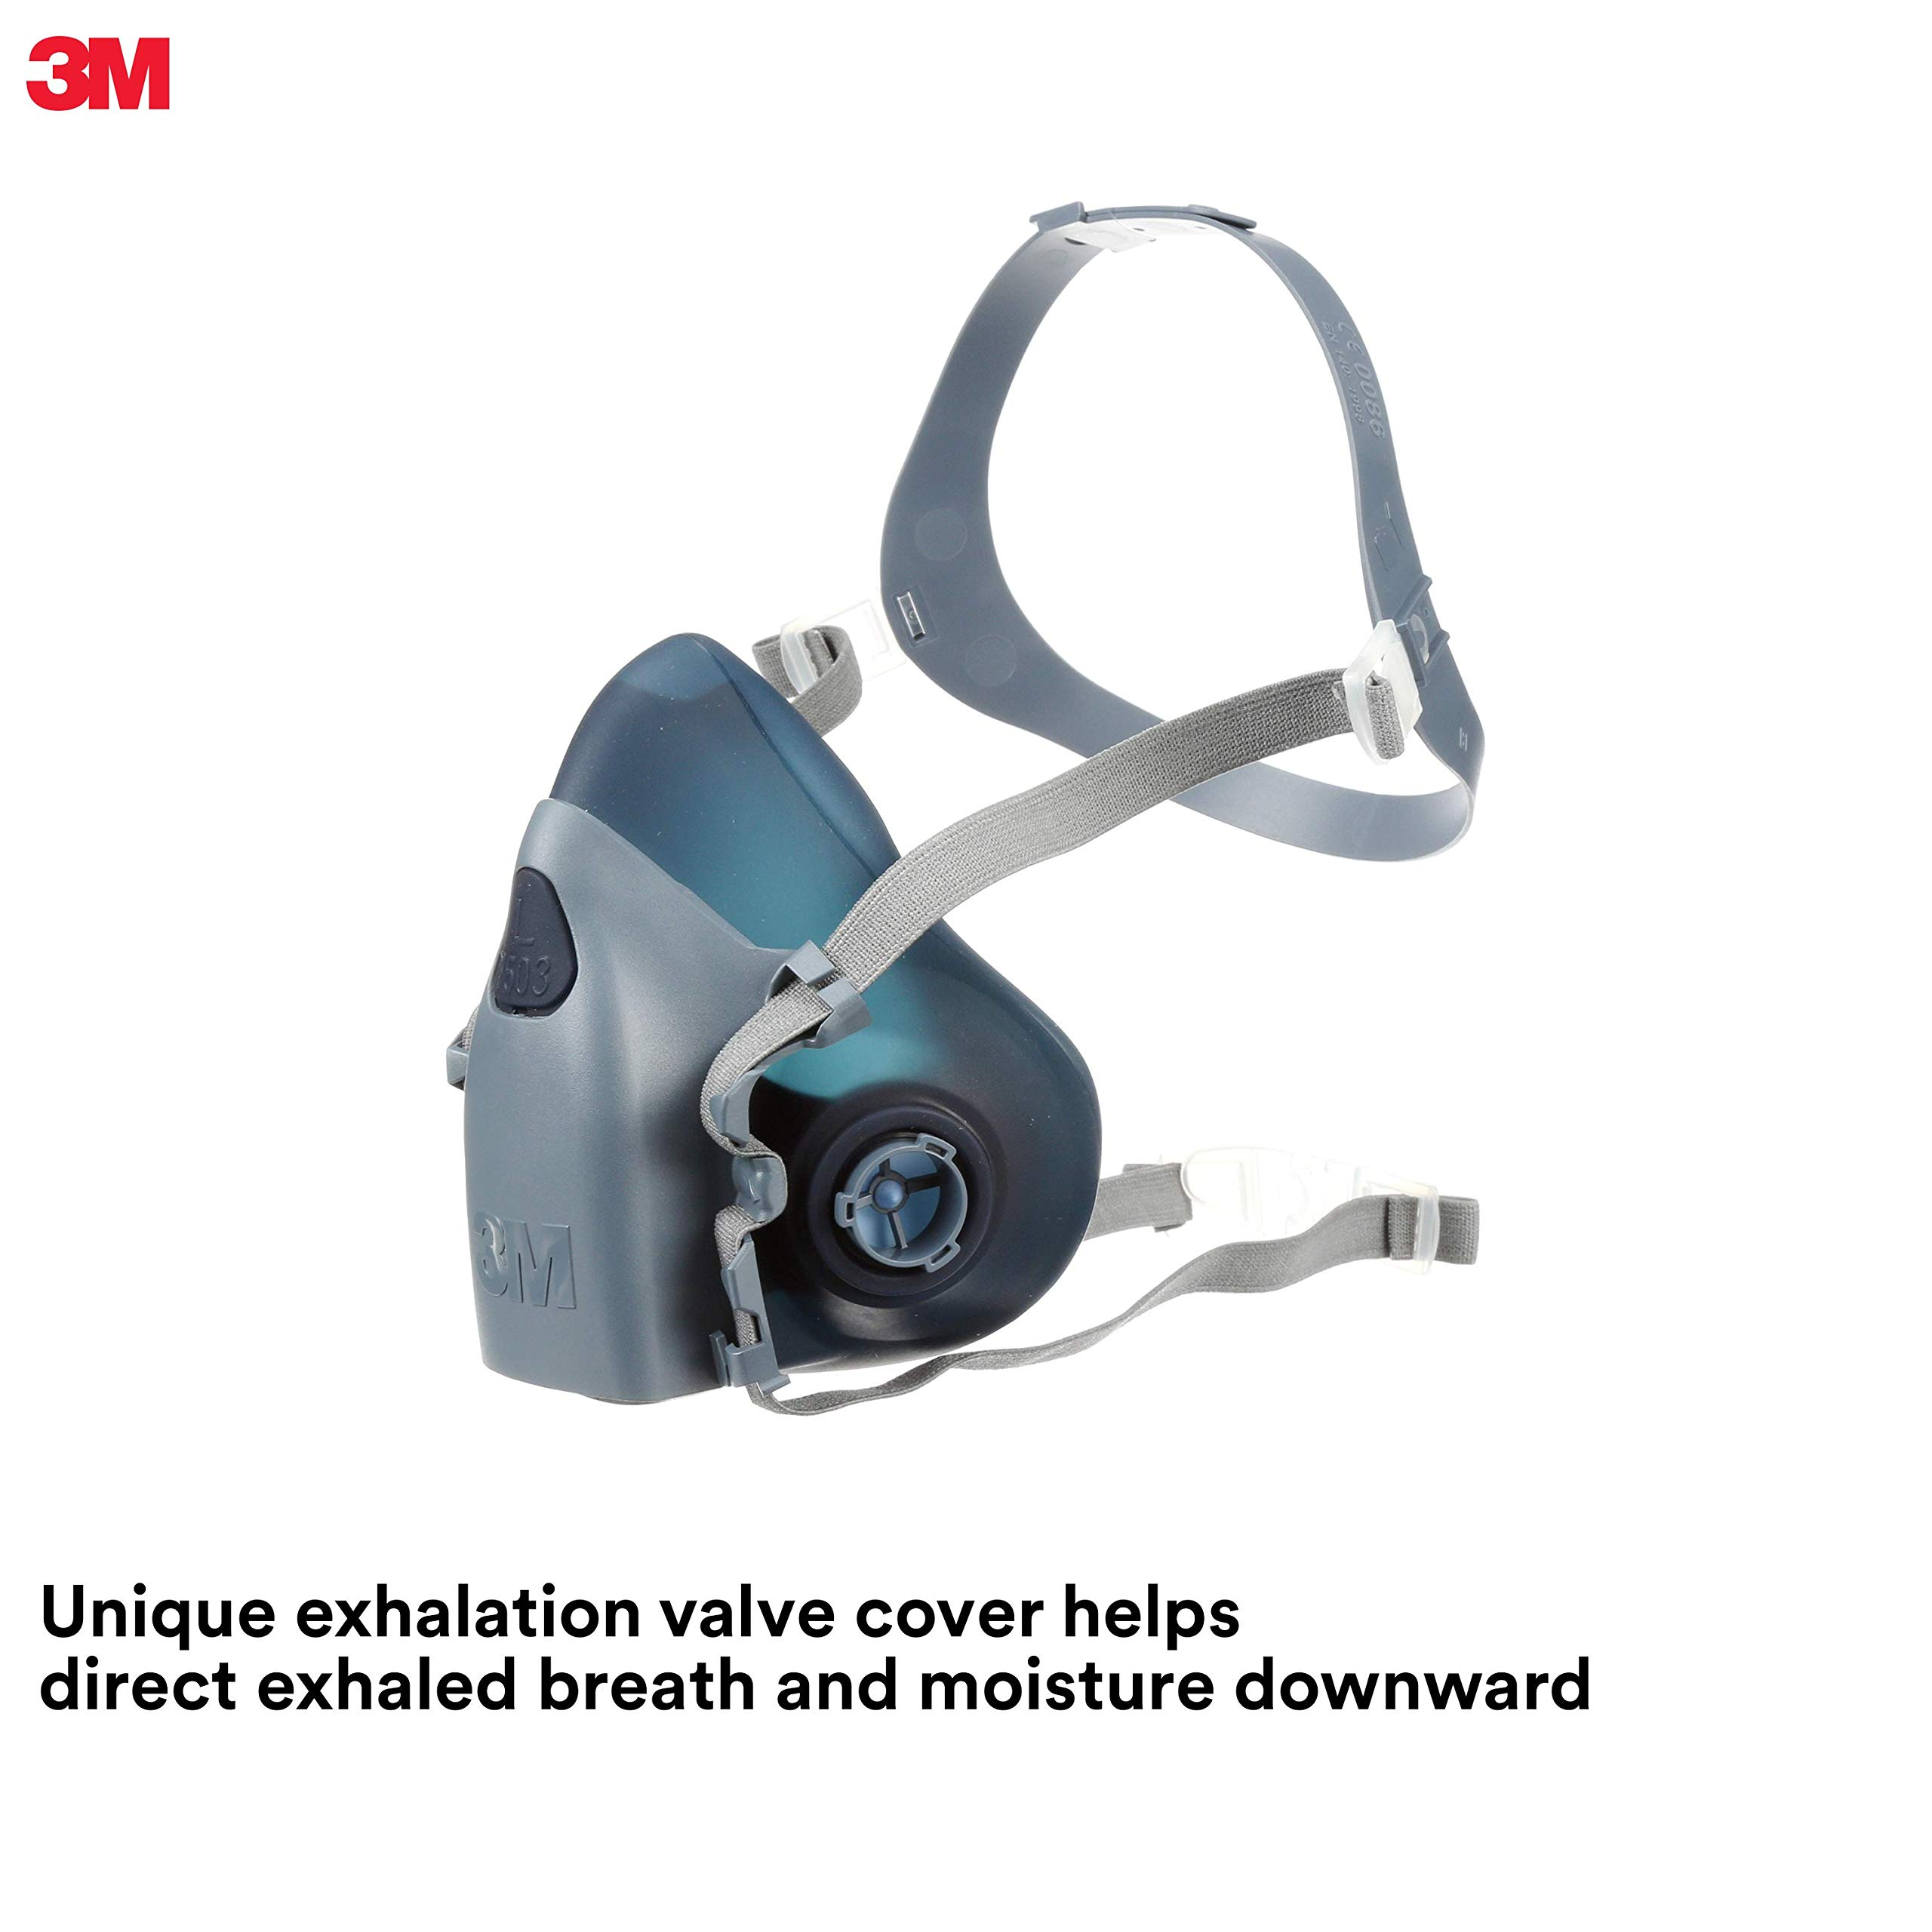 3M Large Half Facepiece Reusable Respirator 7503/37083(AAD), Respiratory Protection, Large by 3M Personal Protective Equipment